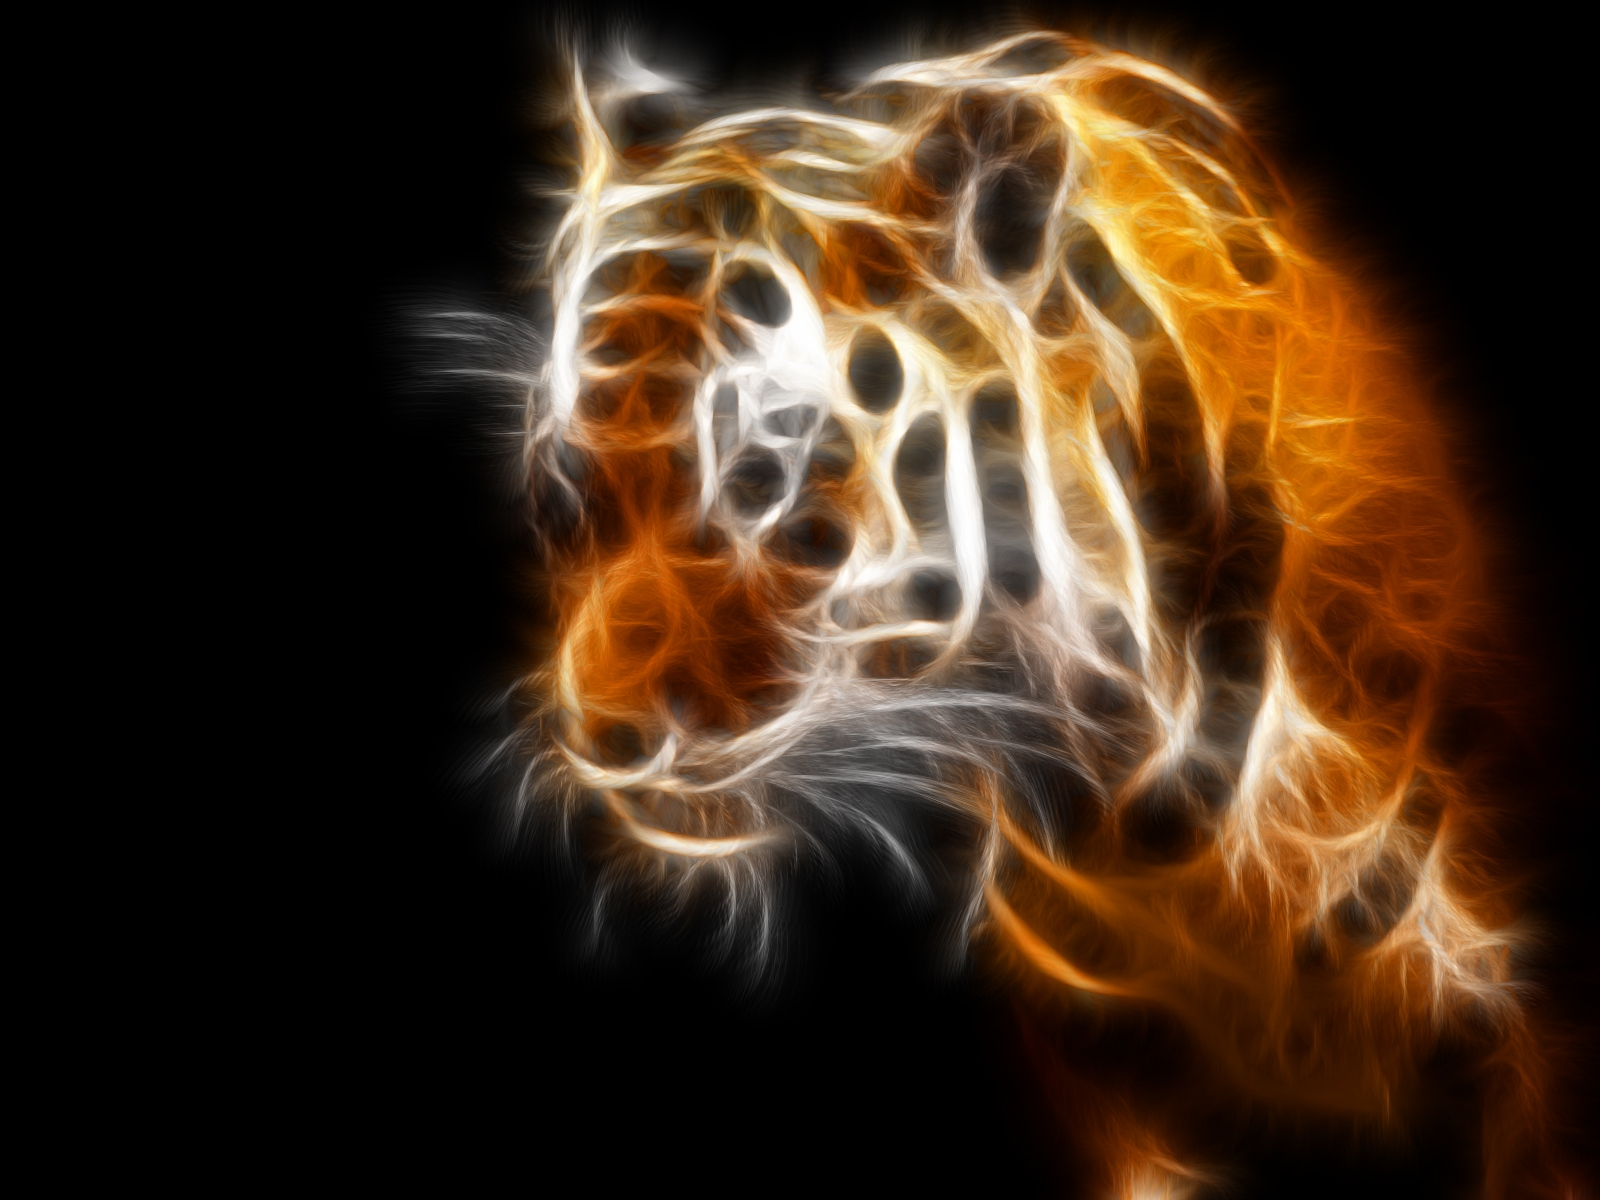 Hd 3d Neon Wallpapers Neon Tiger Hd Images And Pictures Picamon